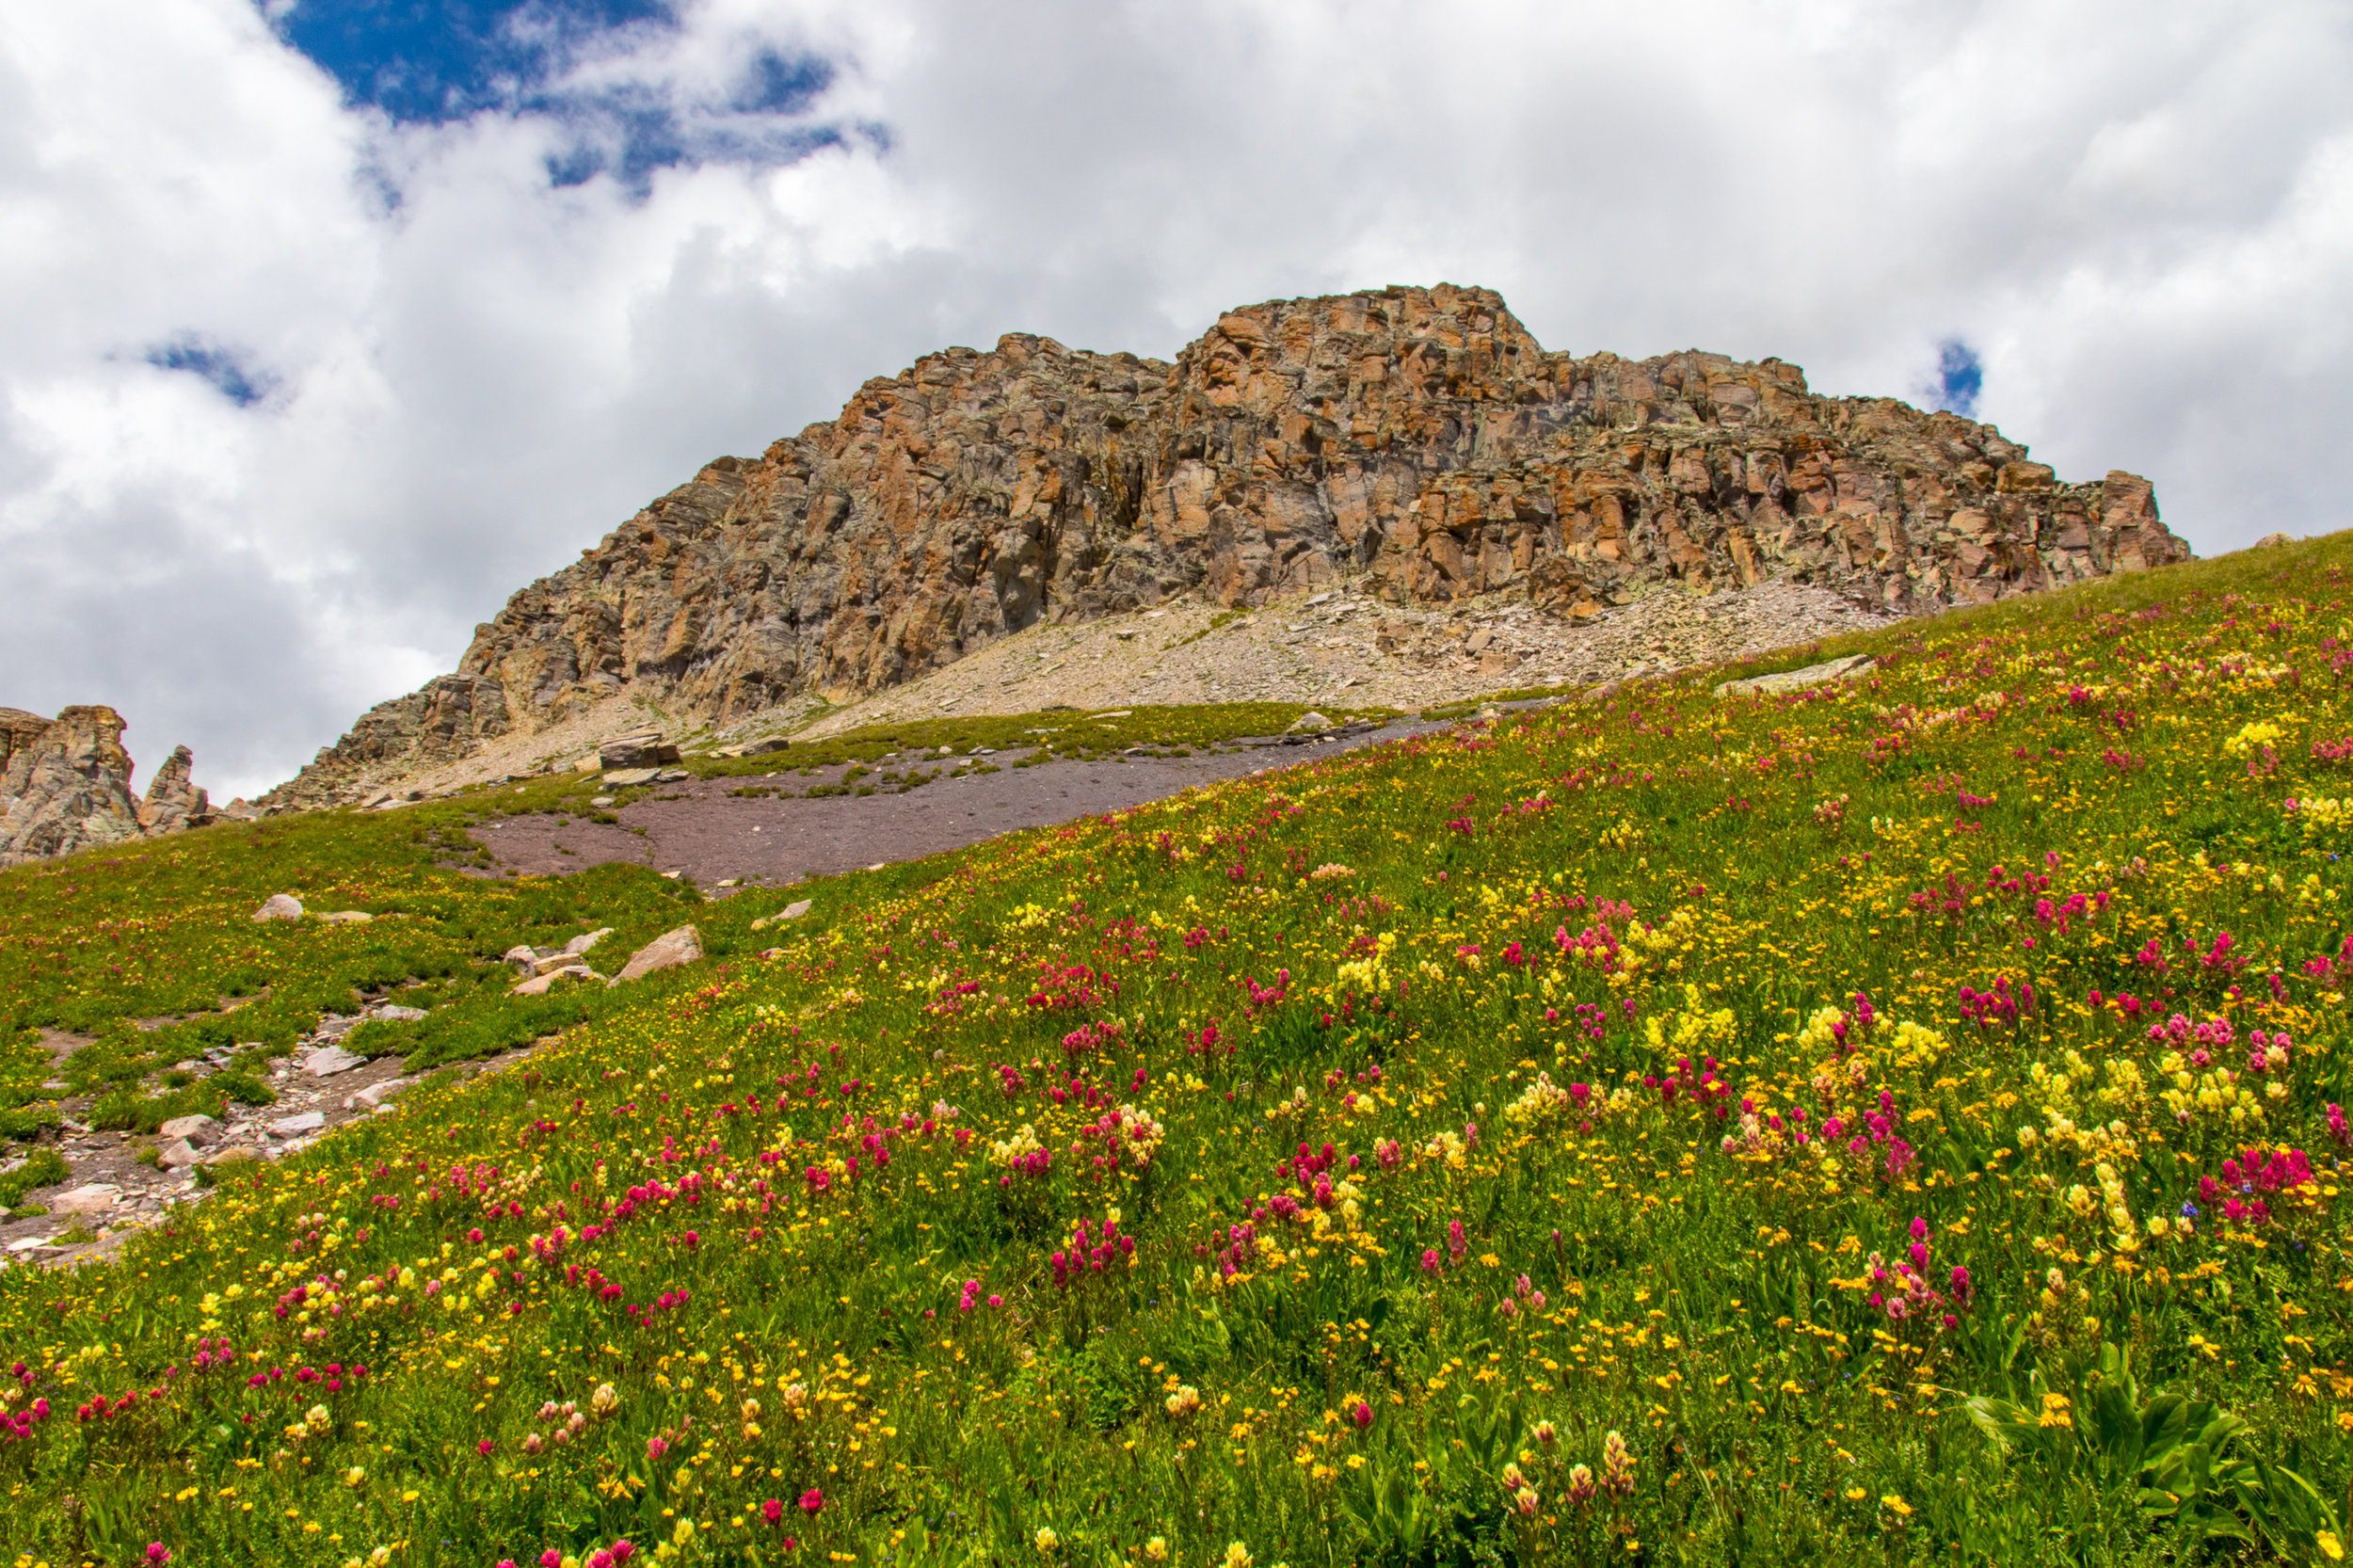 Wildflowers along the route to Columbine Pass & Lake